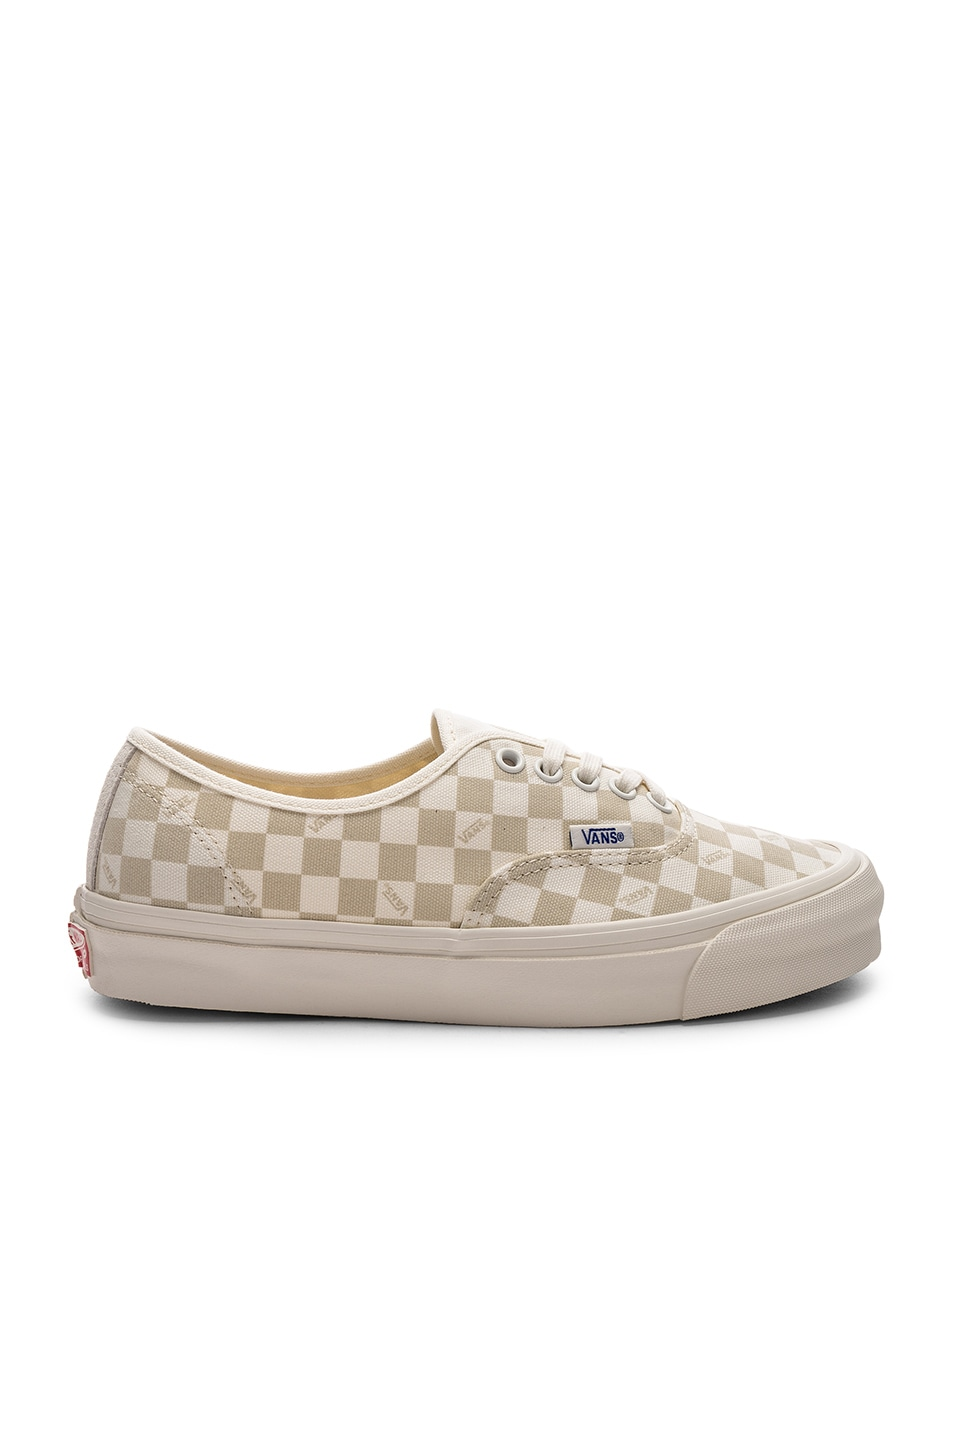 758cc790a6503e Image 1 of Vans Vault OG Authentic LX in Checkerboard   Marshmallow